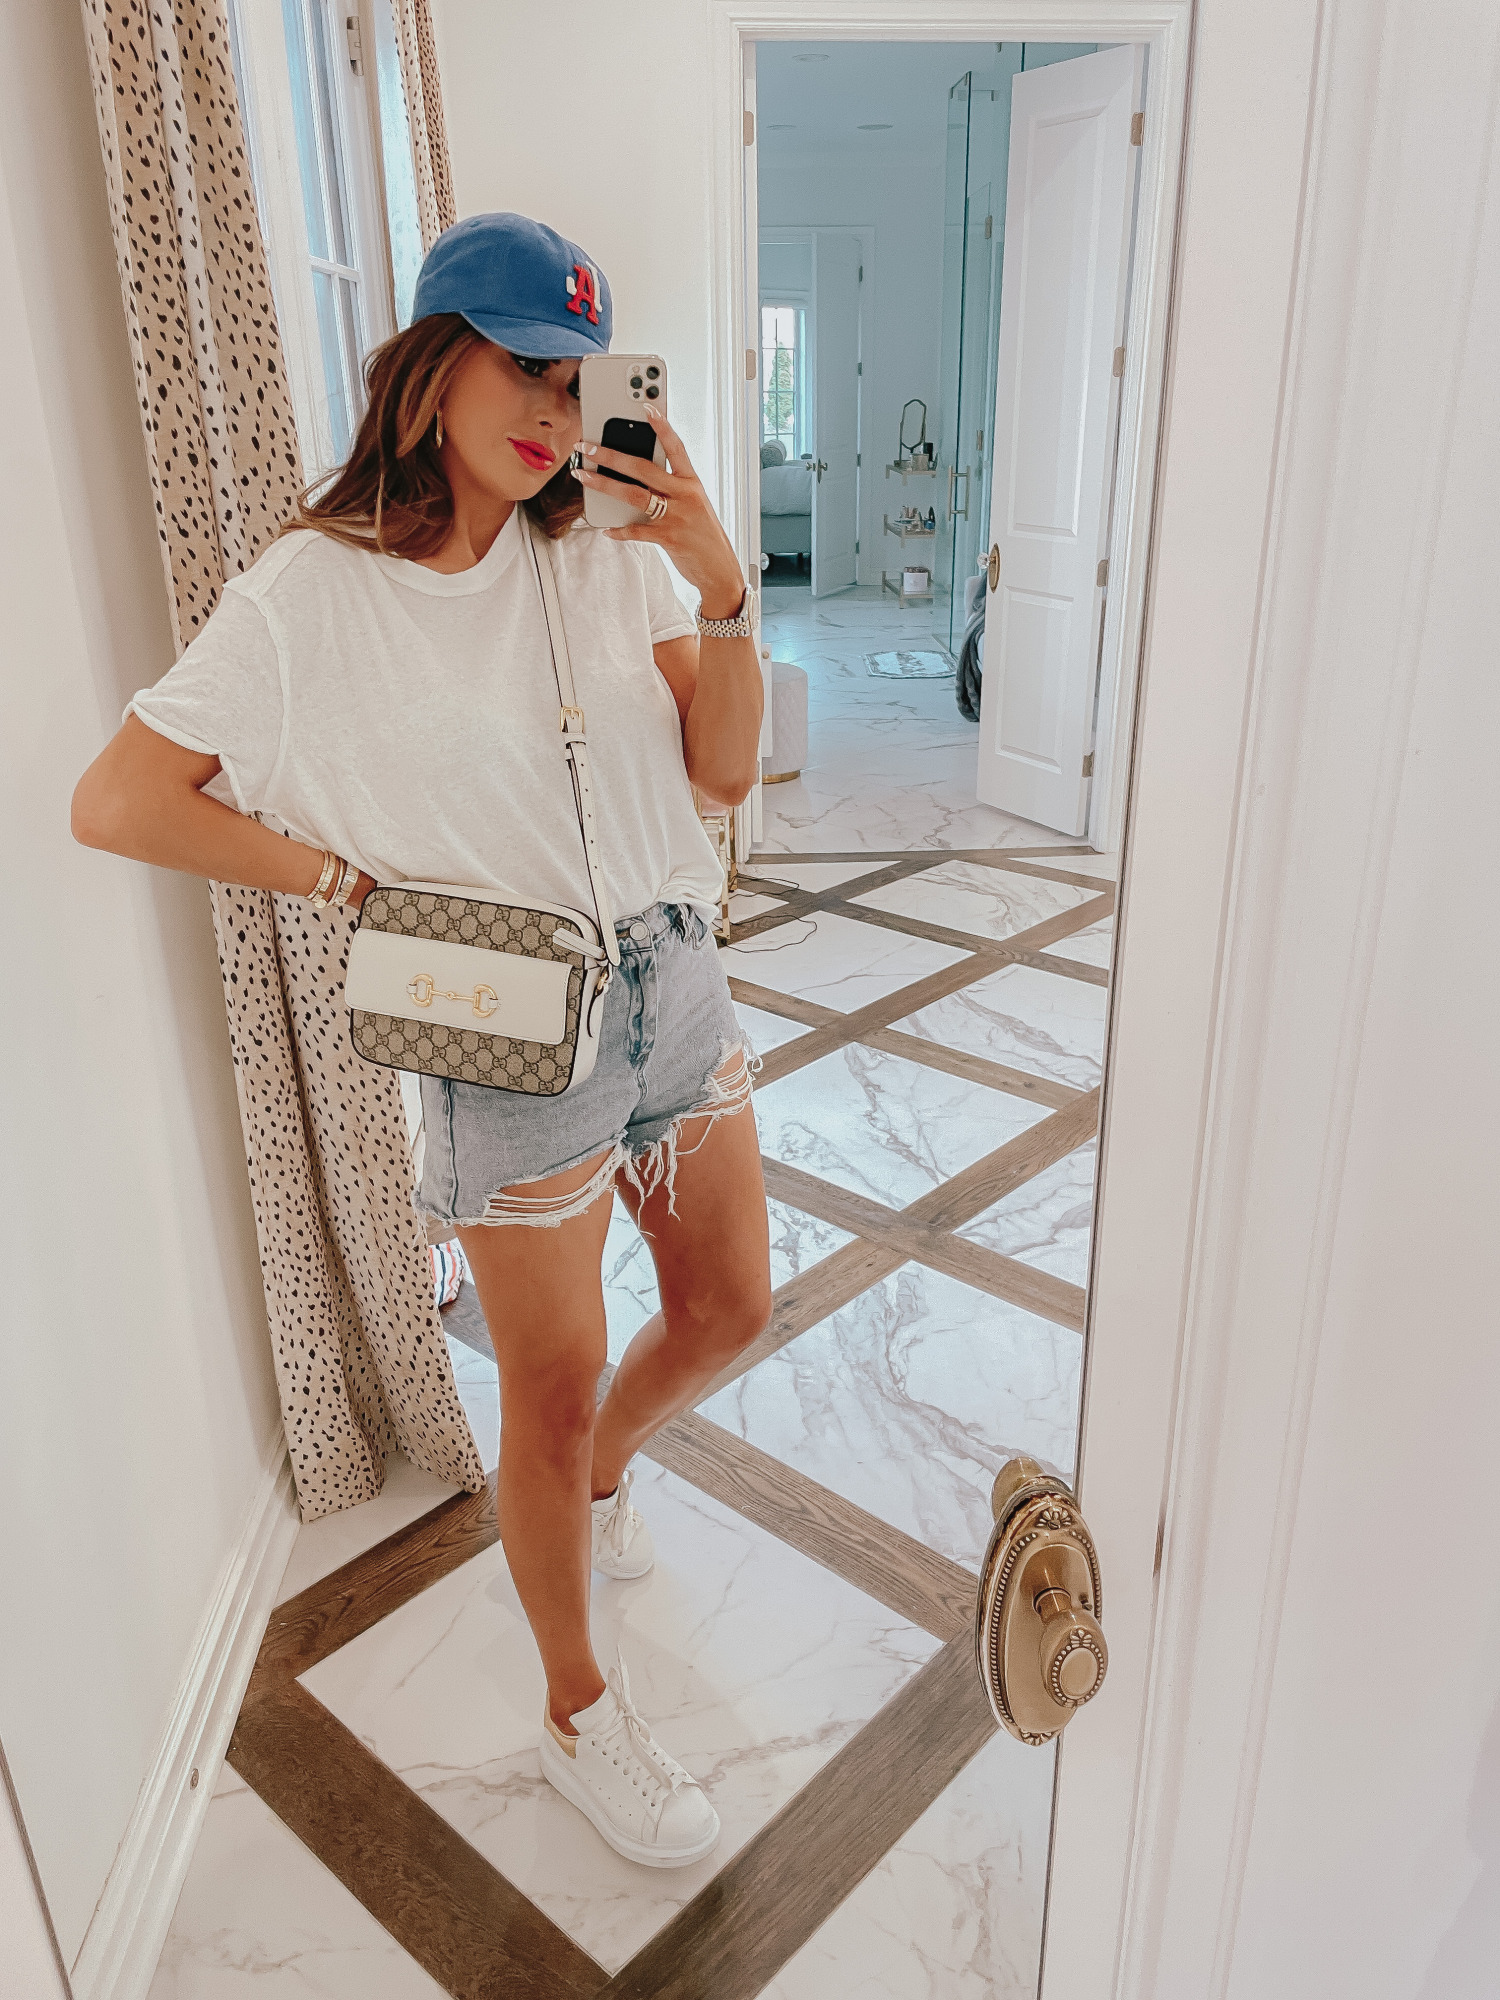 july 4 outfit inspiration 2021, pinterest july 4 outfit, gucci red lipstick, gucci 1955 horsebit crossbody, Emily gemma |  June Instagram Recap by popular US fashion blog, The Sweetest Thing: image of Emily Gemma wearing a blue baseball cap, white t-shirt, distressed shorts, and white sneakers.